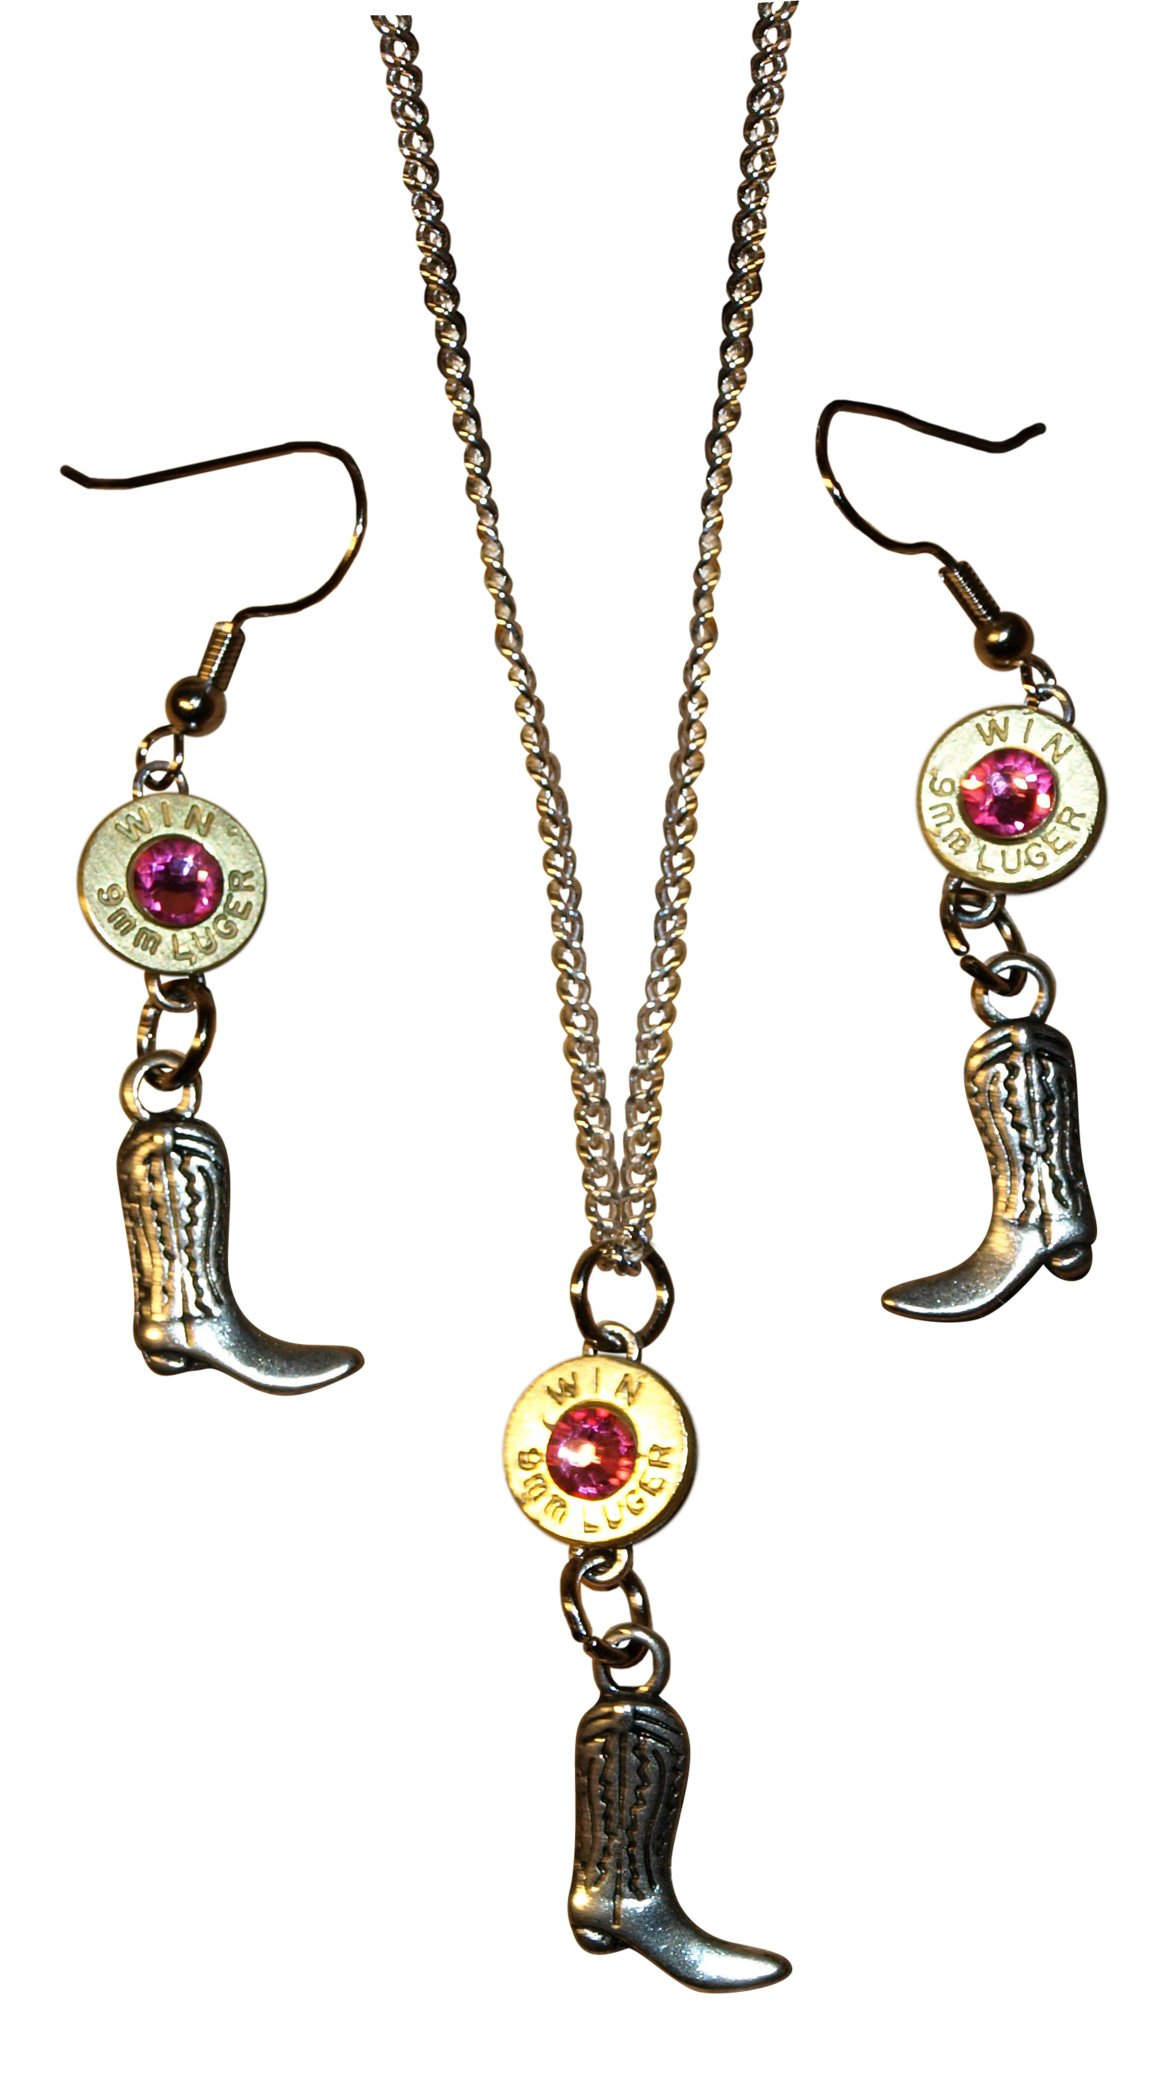 Nickel 9mm Bullet Necklace & Dangle Earrings & Boot Charm. With or Without Crystals. S643